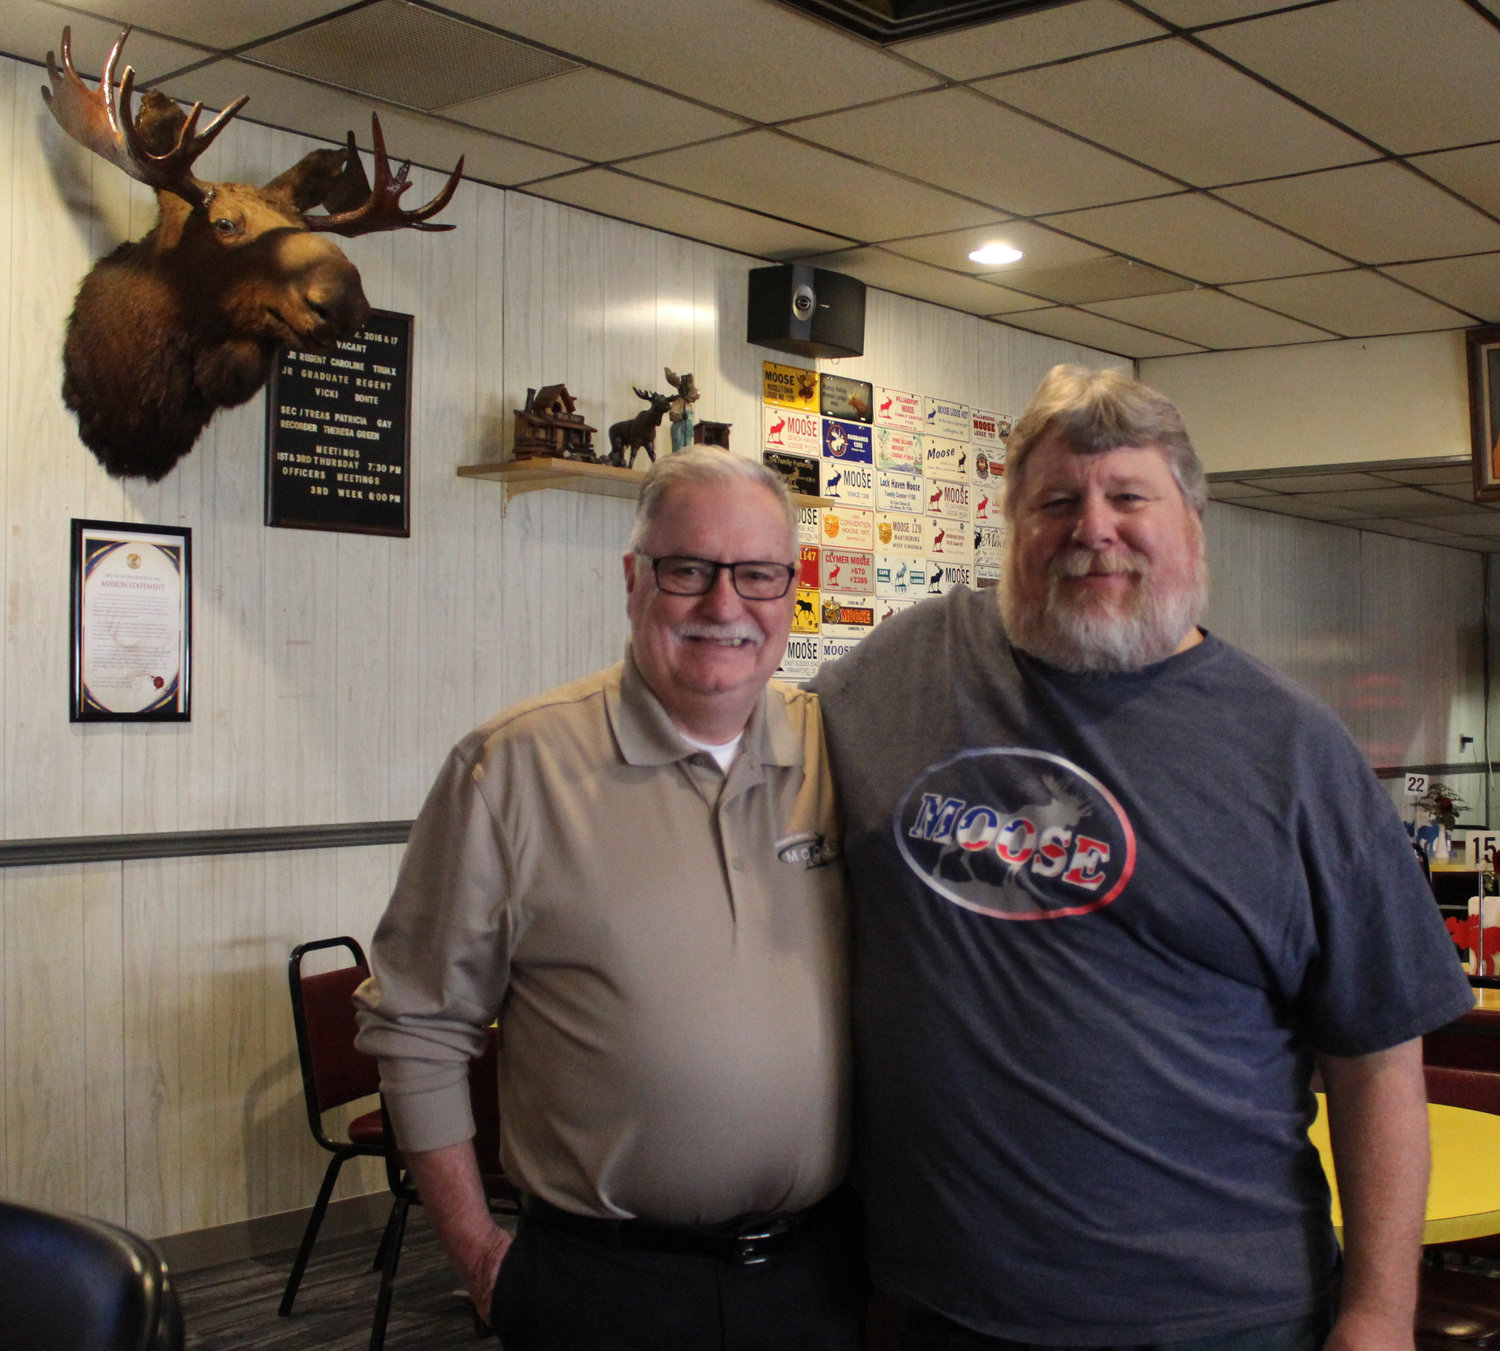 David Donahue, Pennsylvania state president of the Moose Association, and Roger Beery, administrator of the Middletown Moose No. 410, pose in the local Moose location on Mill Street.